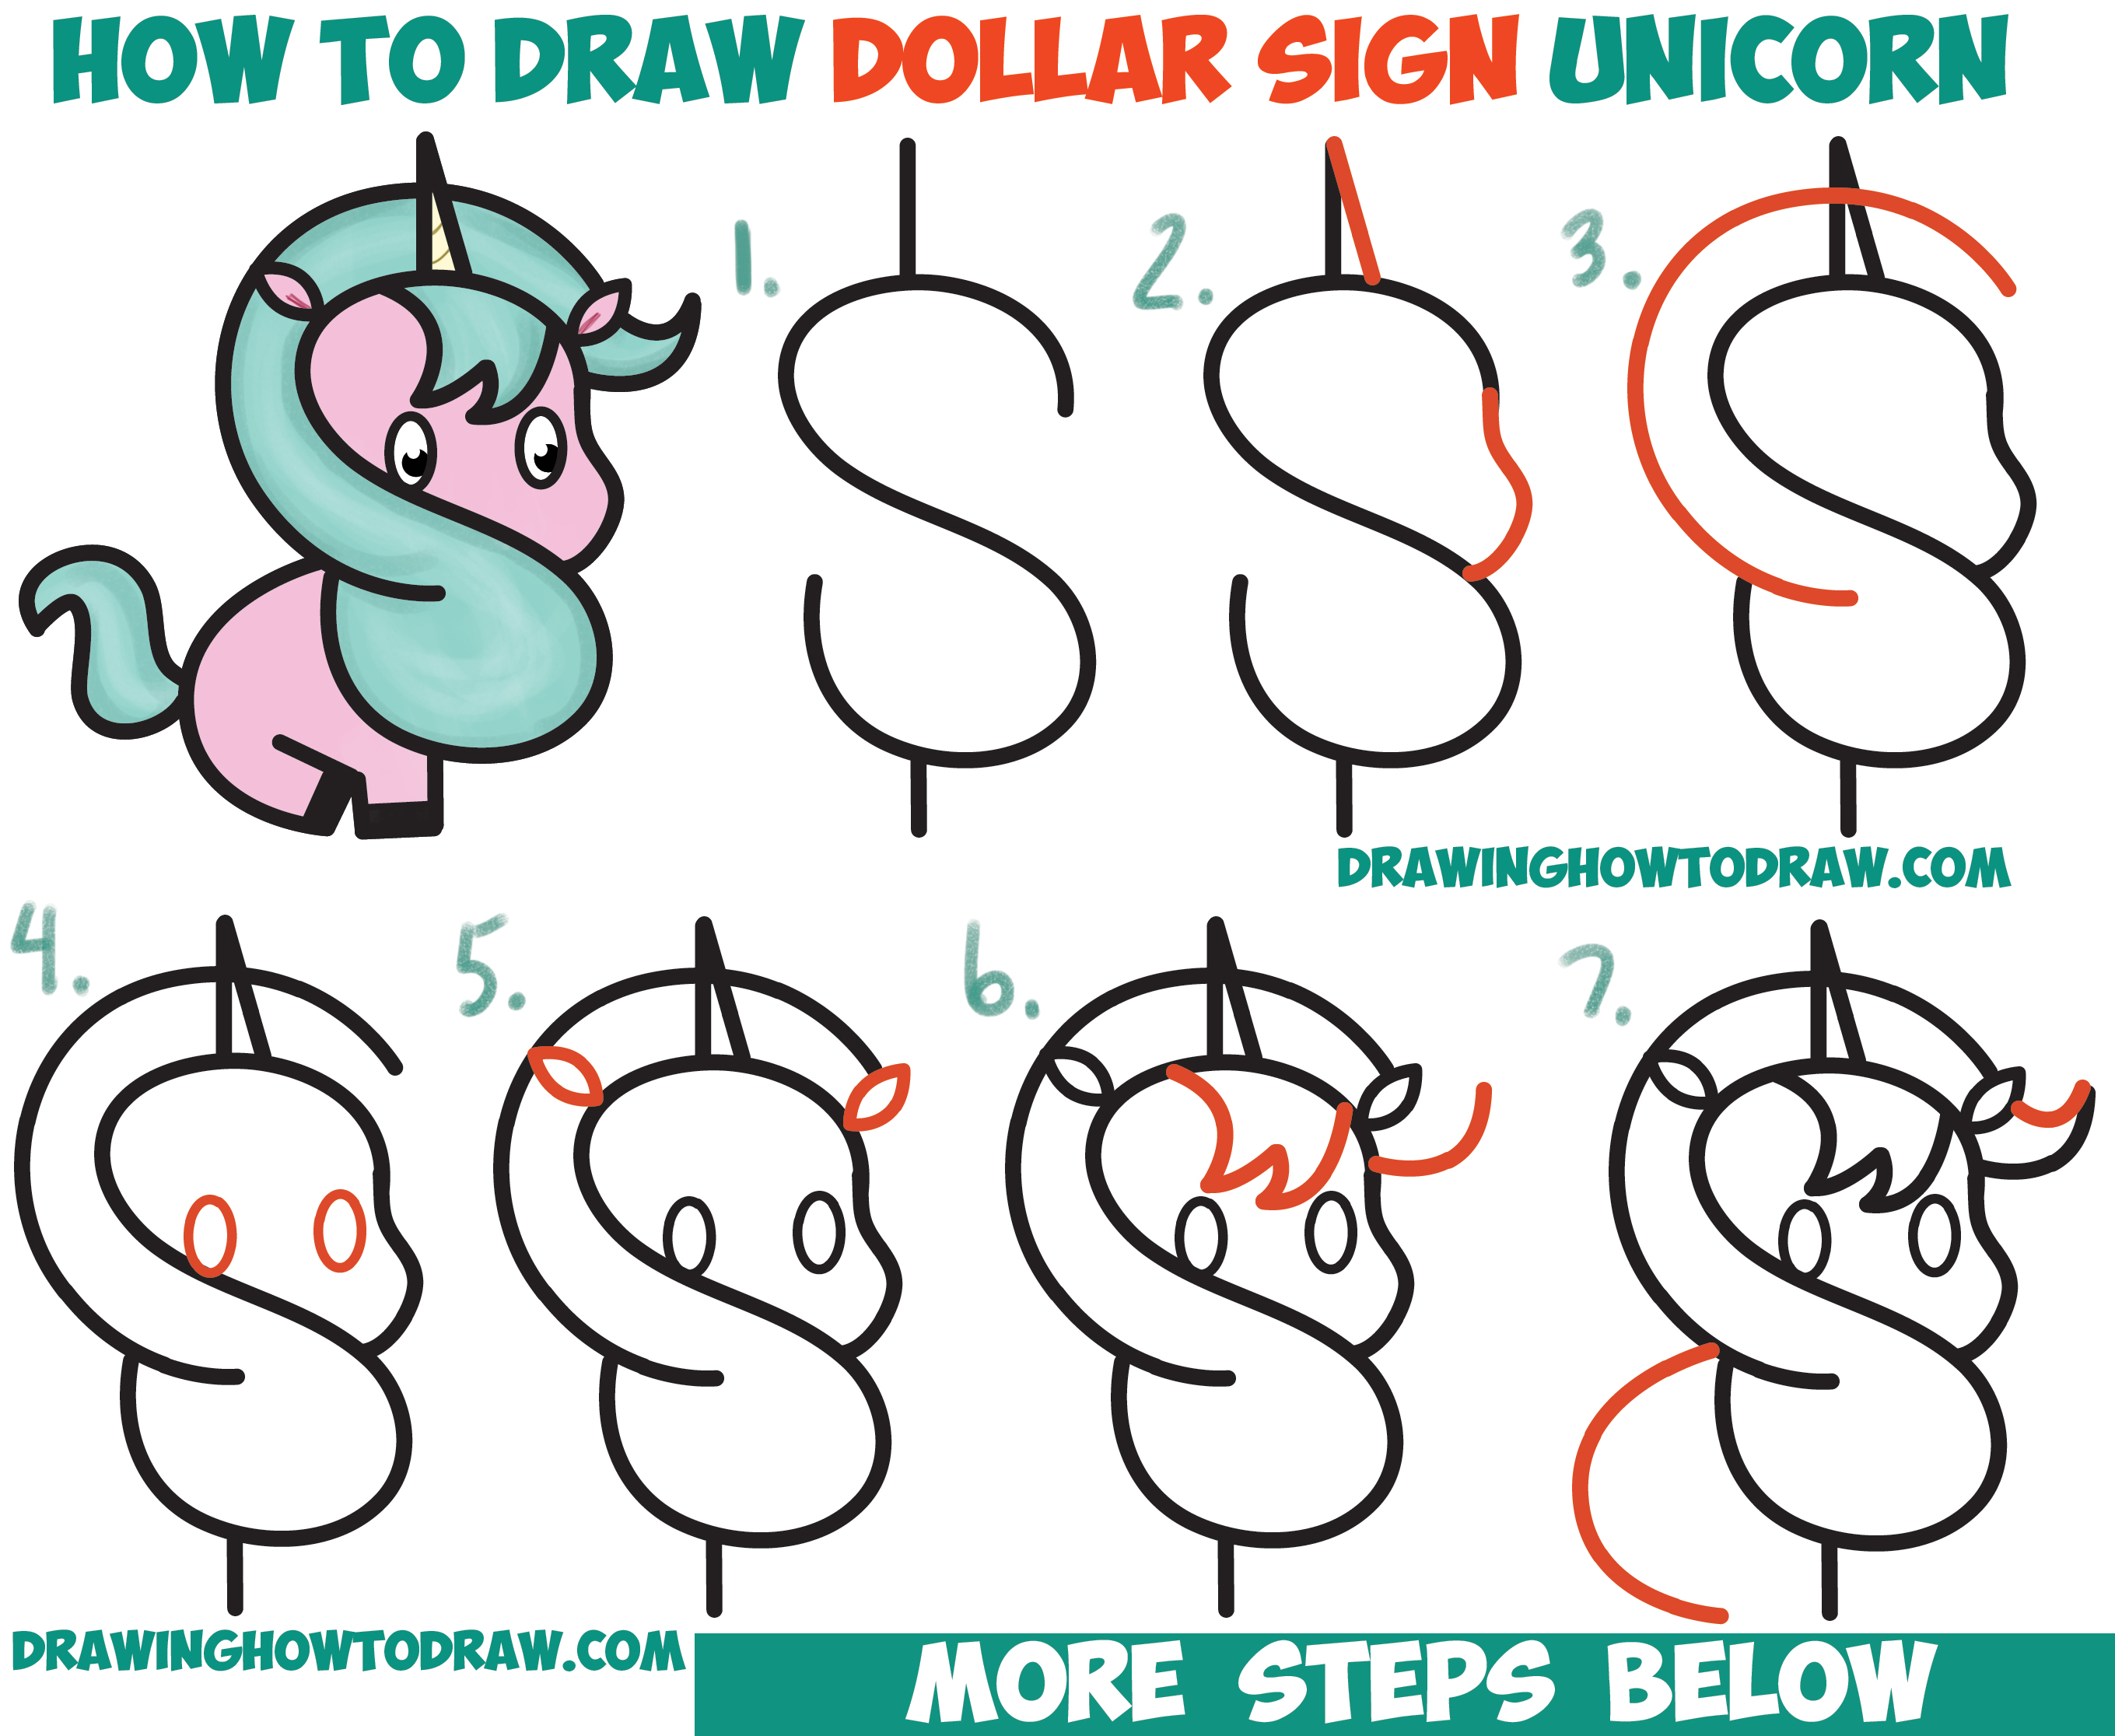 How To Draw A Cute Cartoon Unicorn Kawaii From Dollar Sign Easy Step